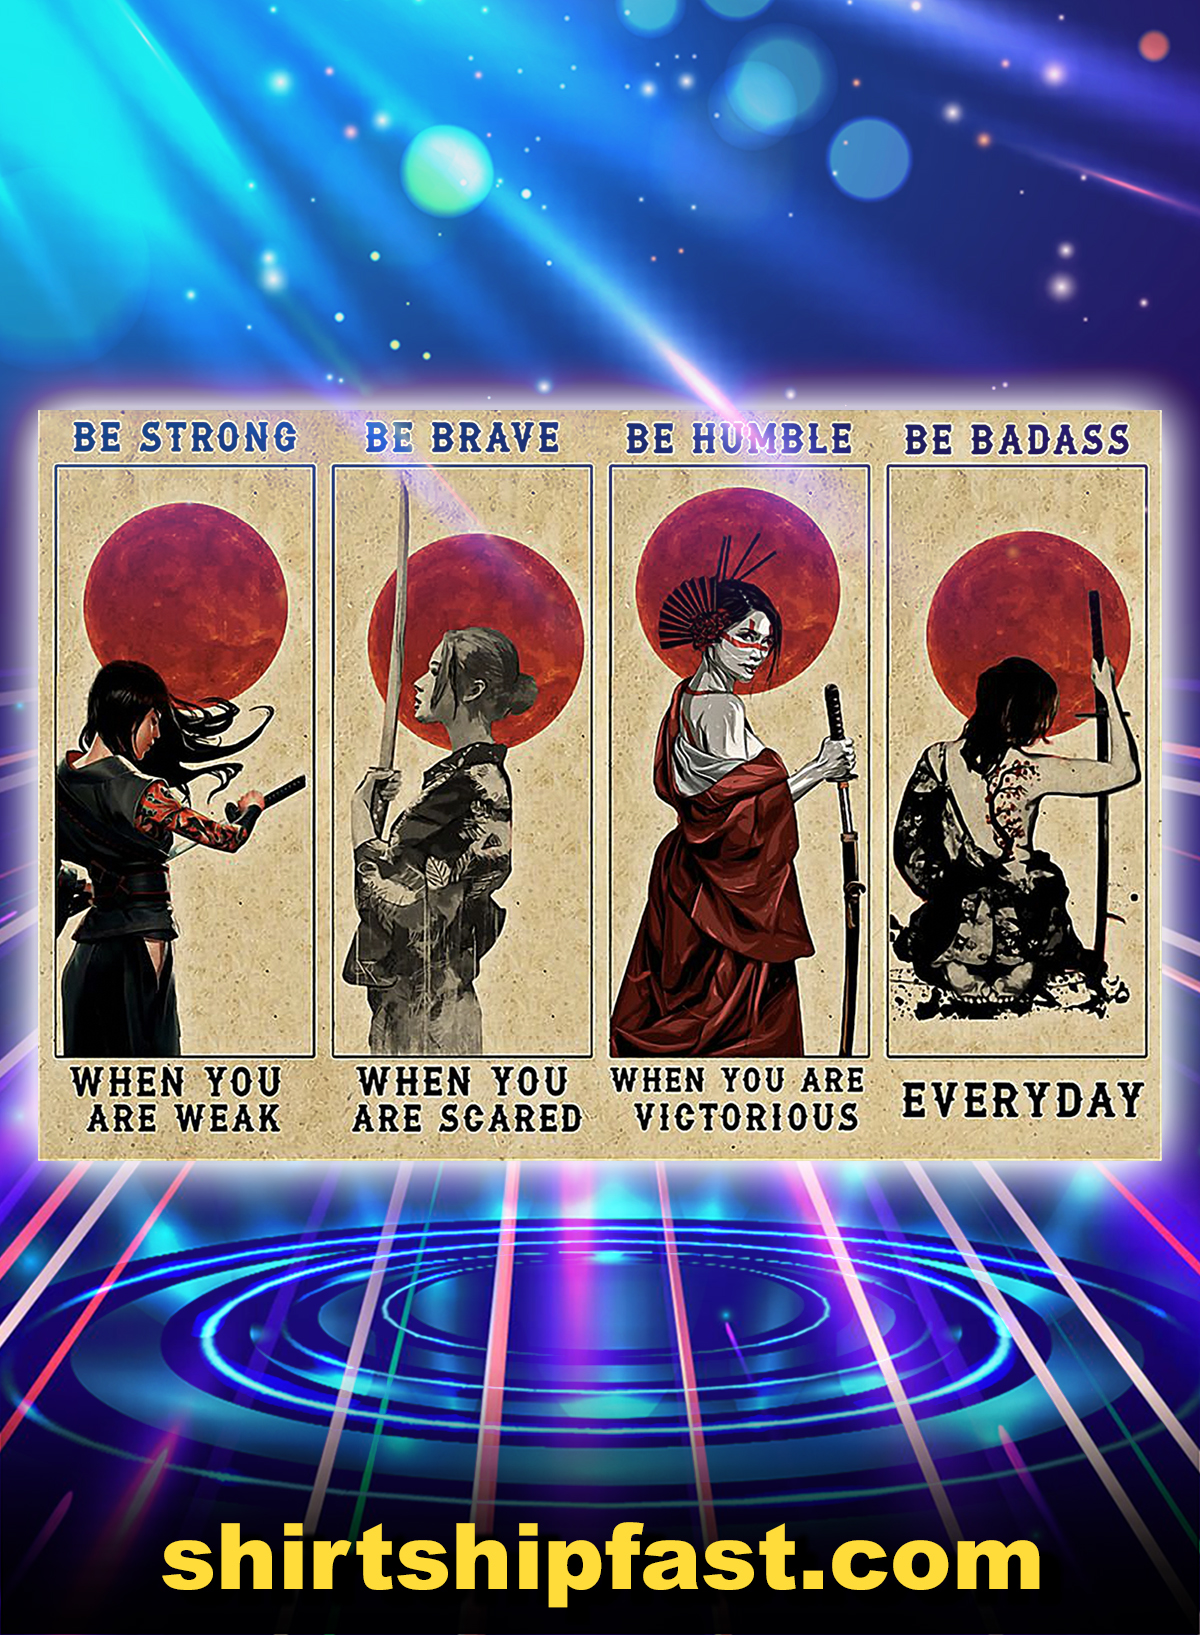 Samurai girl be strong be brave be humble be badass poster